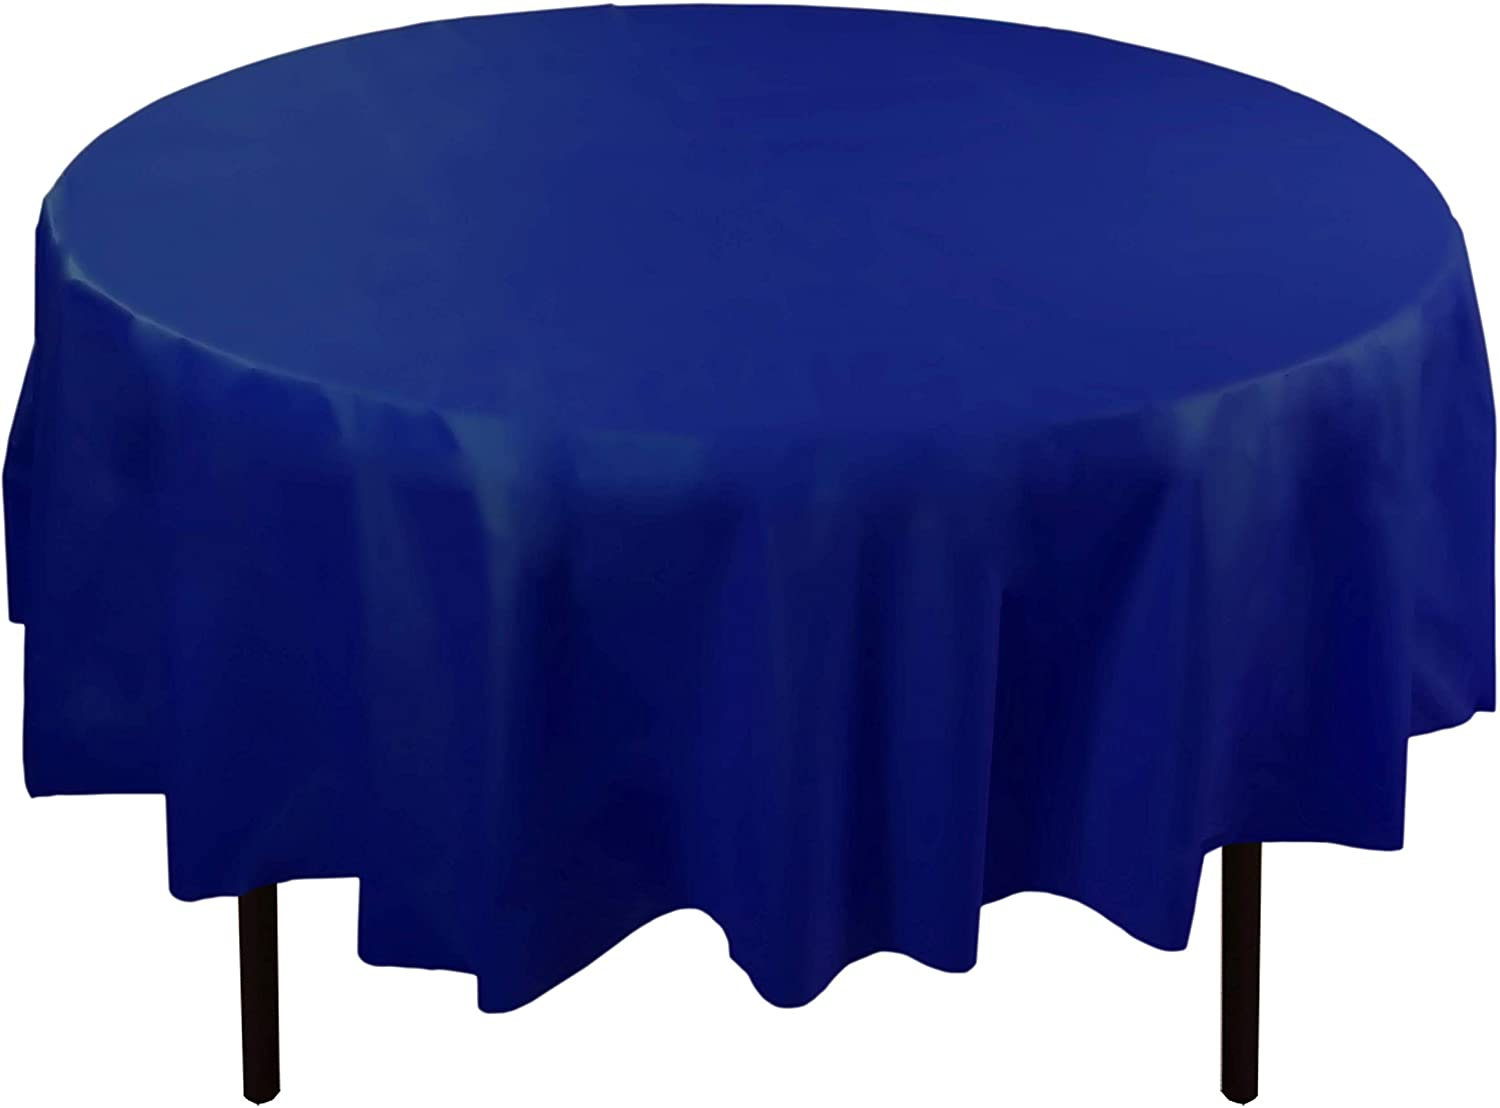 Exquisite 12-Pack Premium Plastic Tablecloth 84in. Round Table Cover - Navy Blue